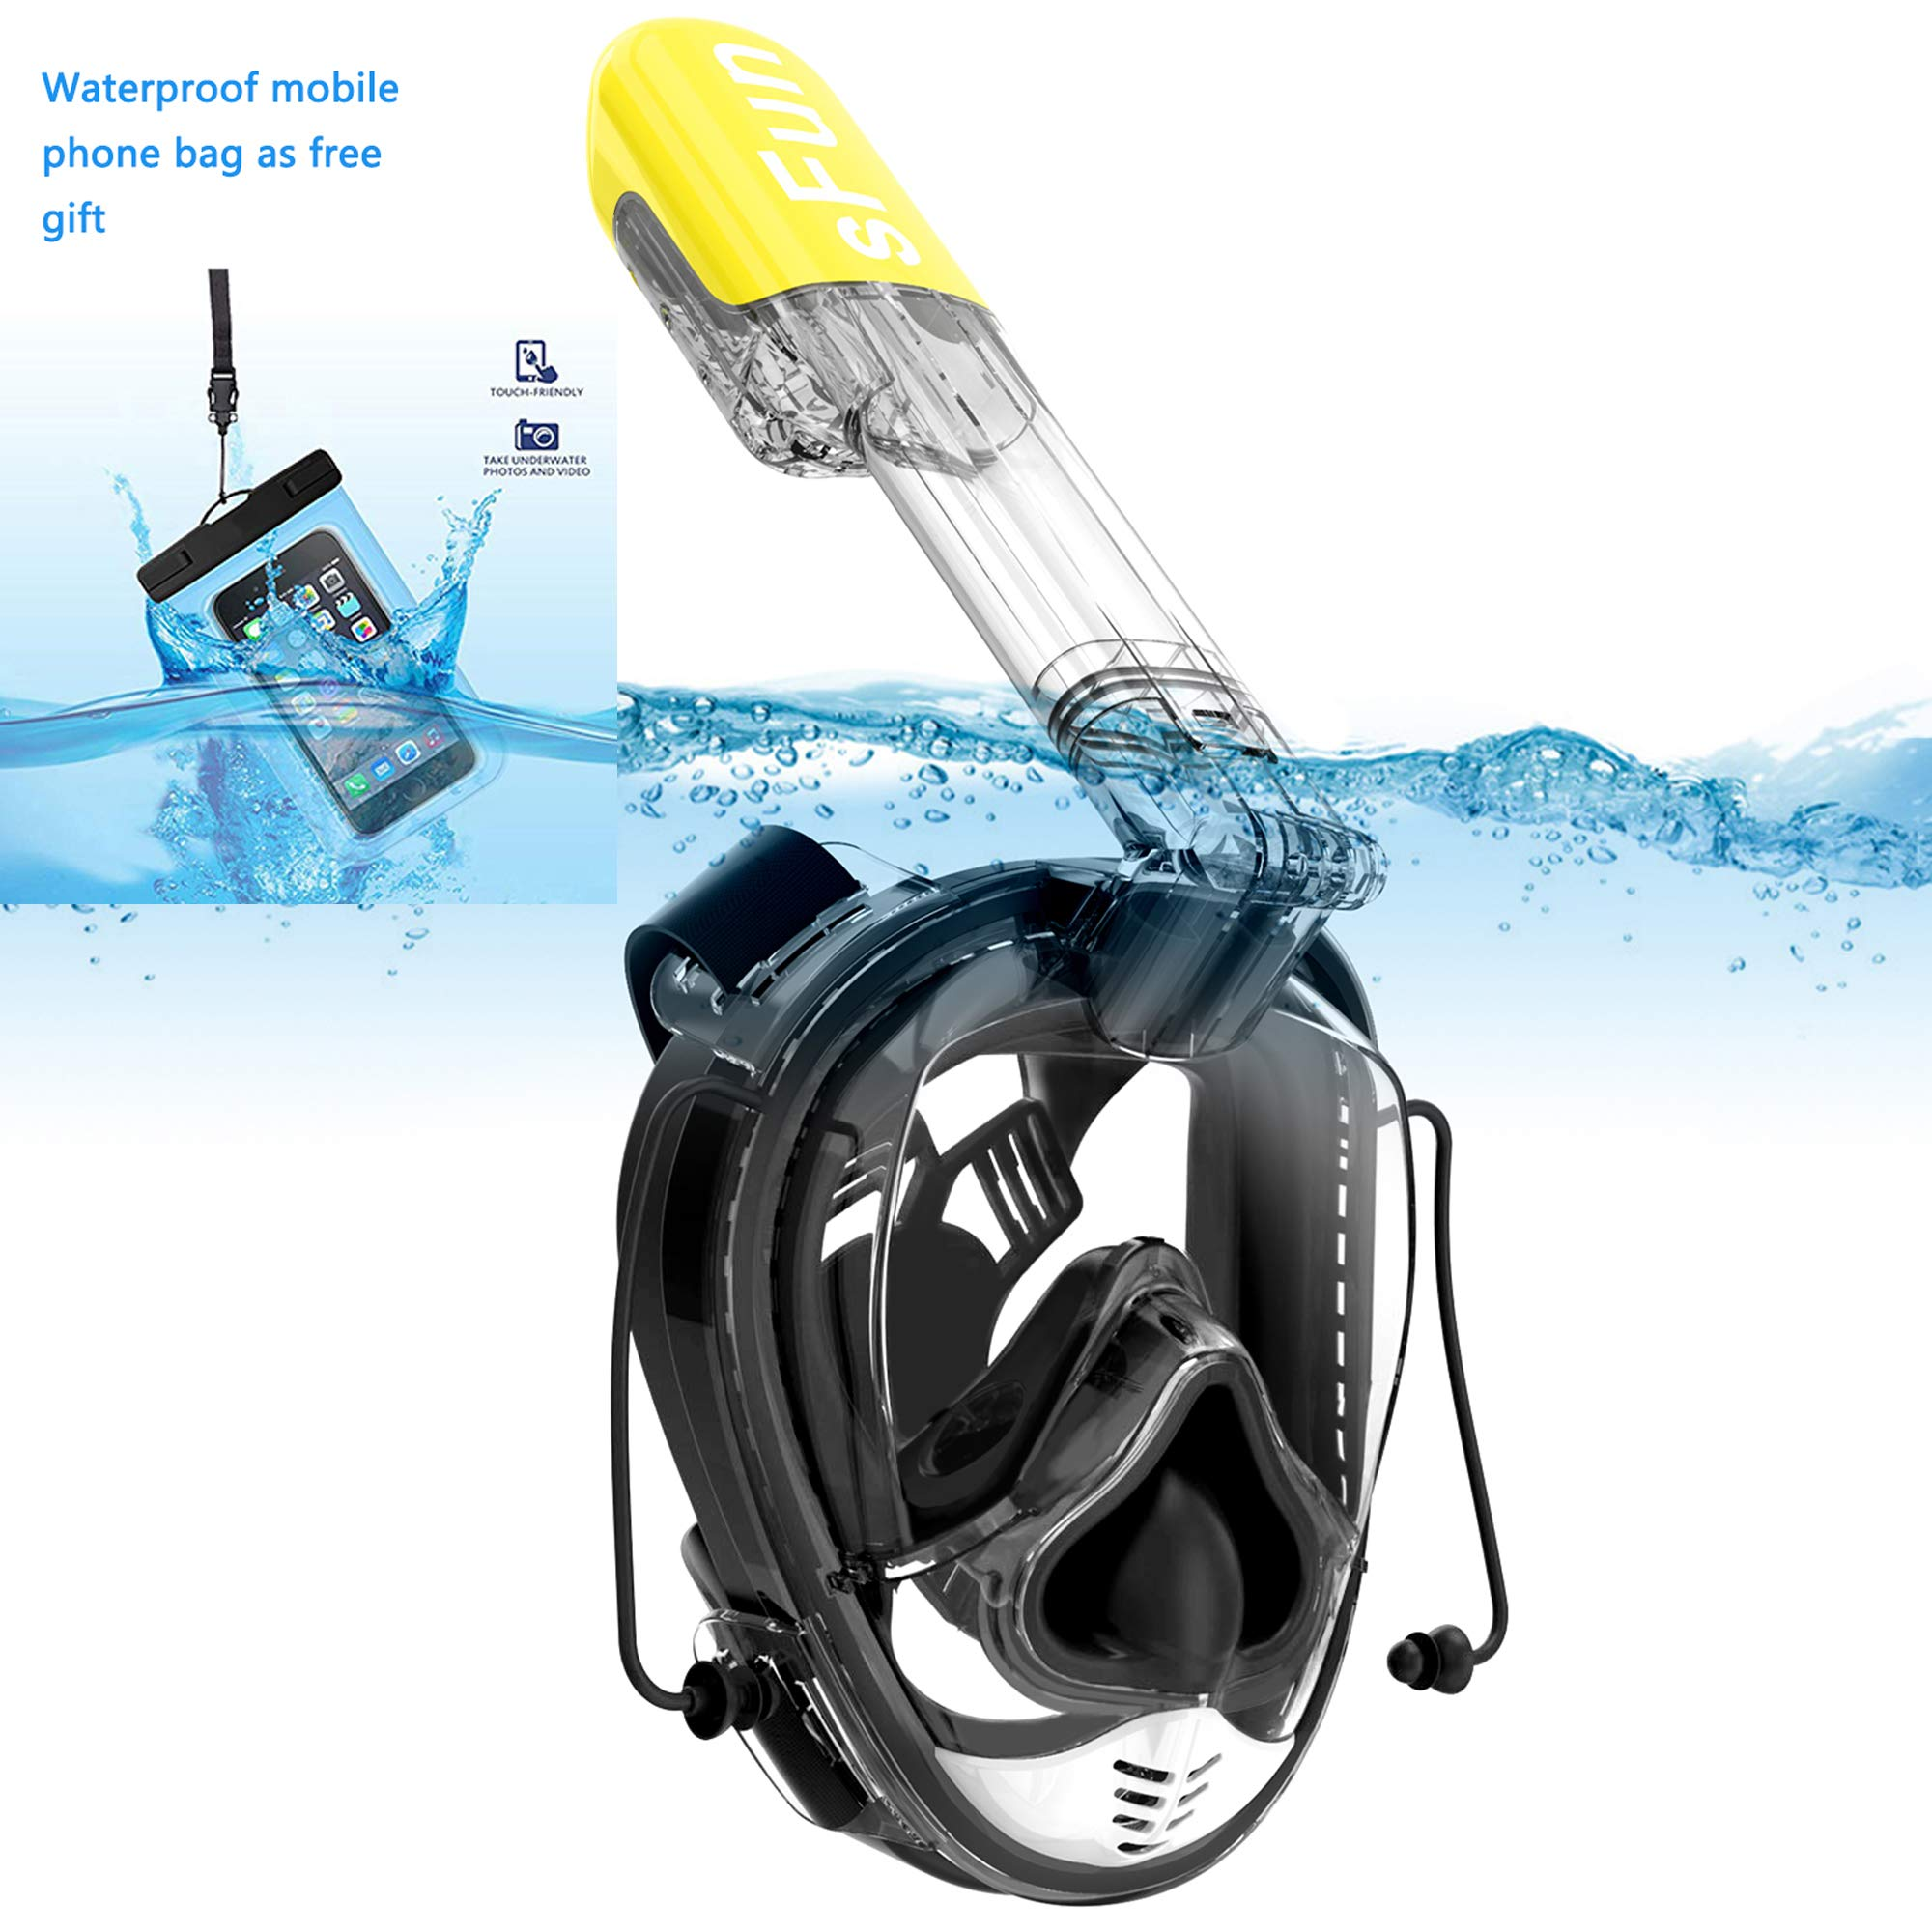 Snorkeling Mask Full Face Snorkel Mask Anti Fog for Adult Kids Diving Snorkeling Scuba Swimming (Black&Yellow) by SFUN